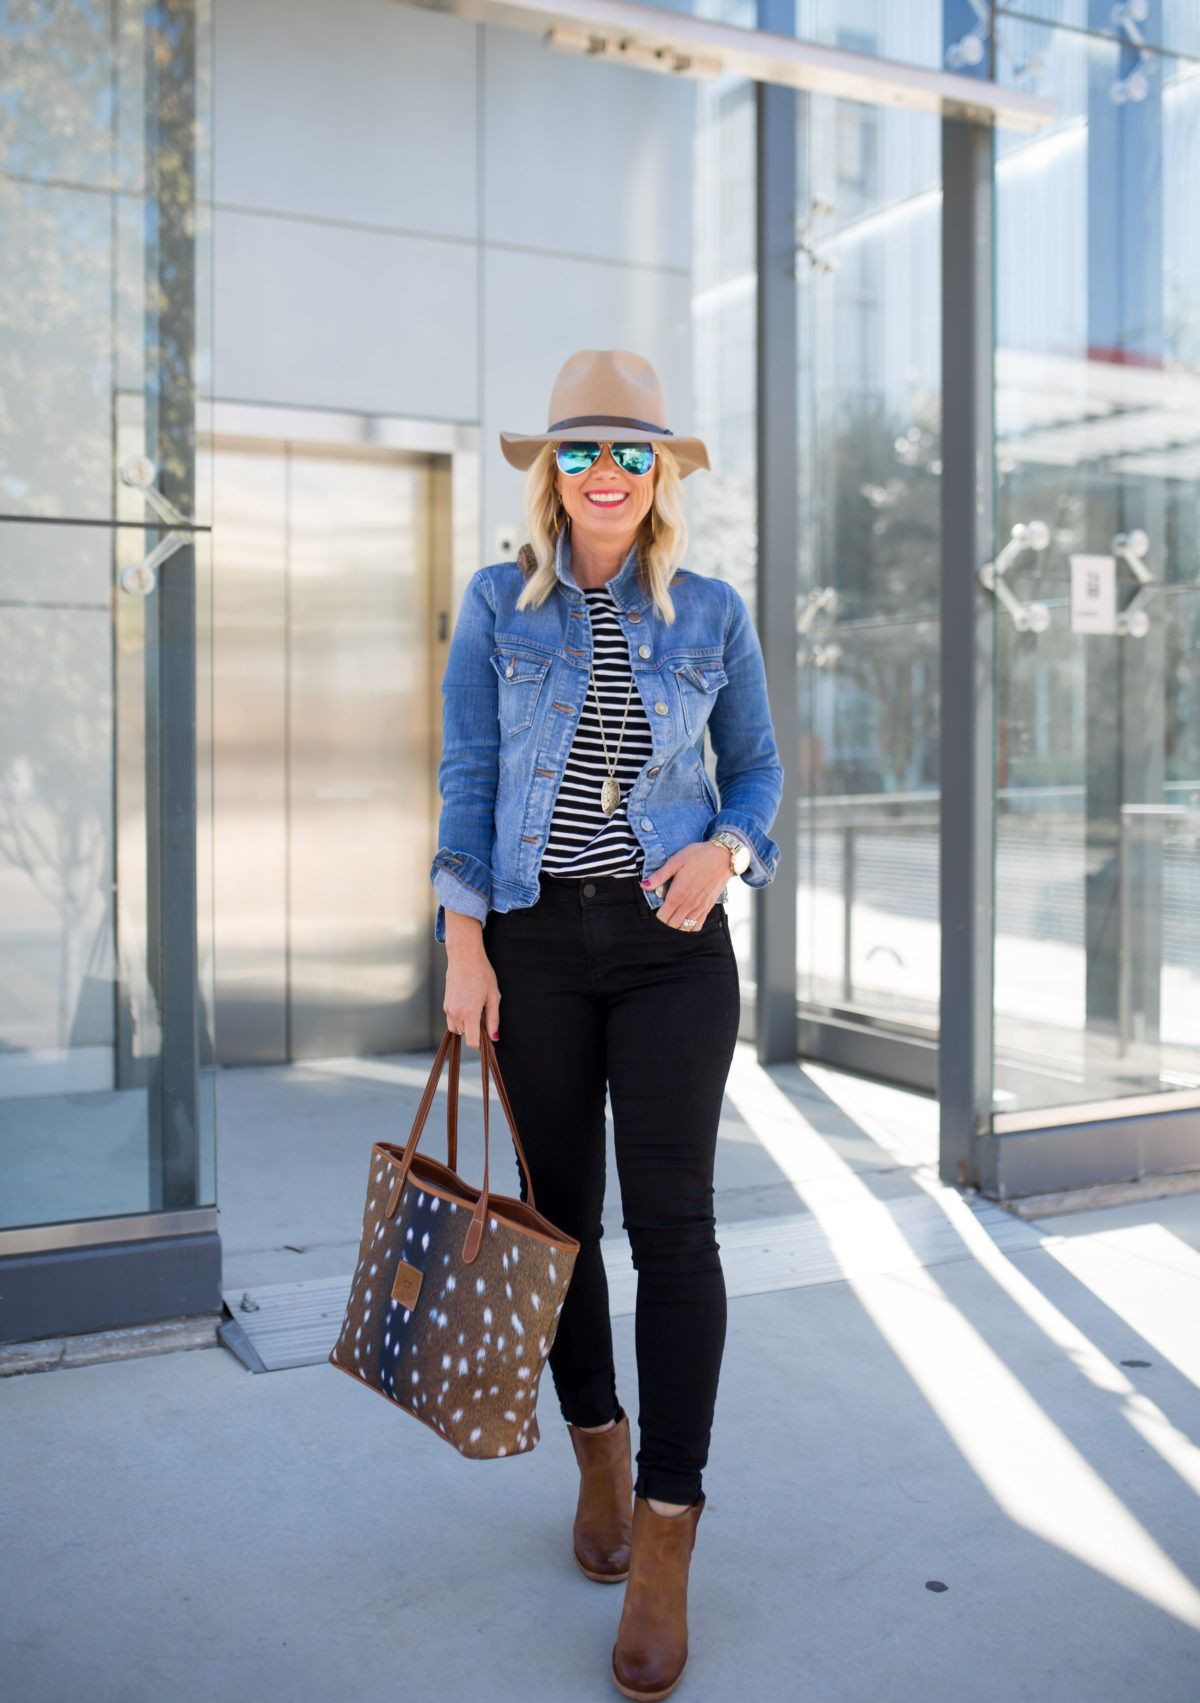 Black and white striped shirt with jean jacket